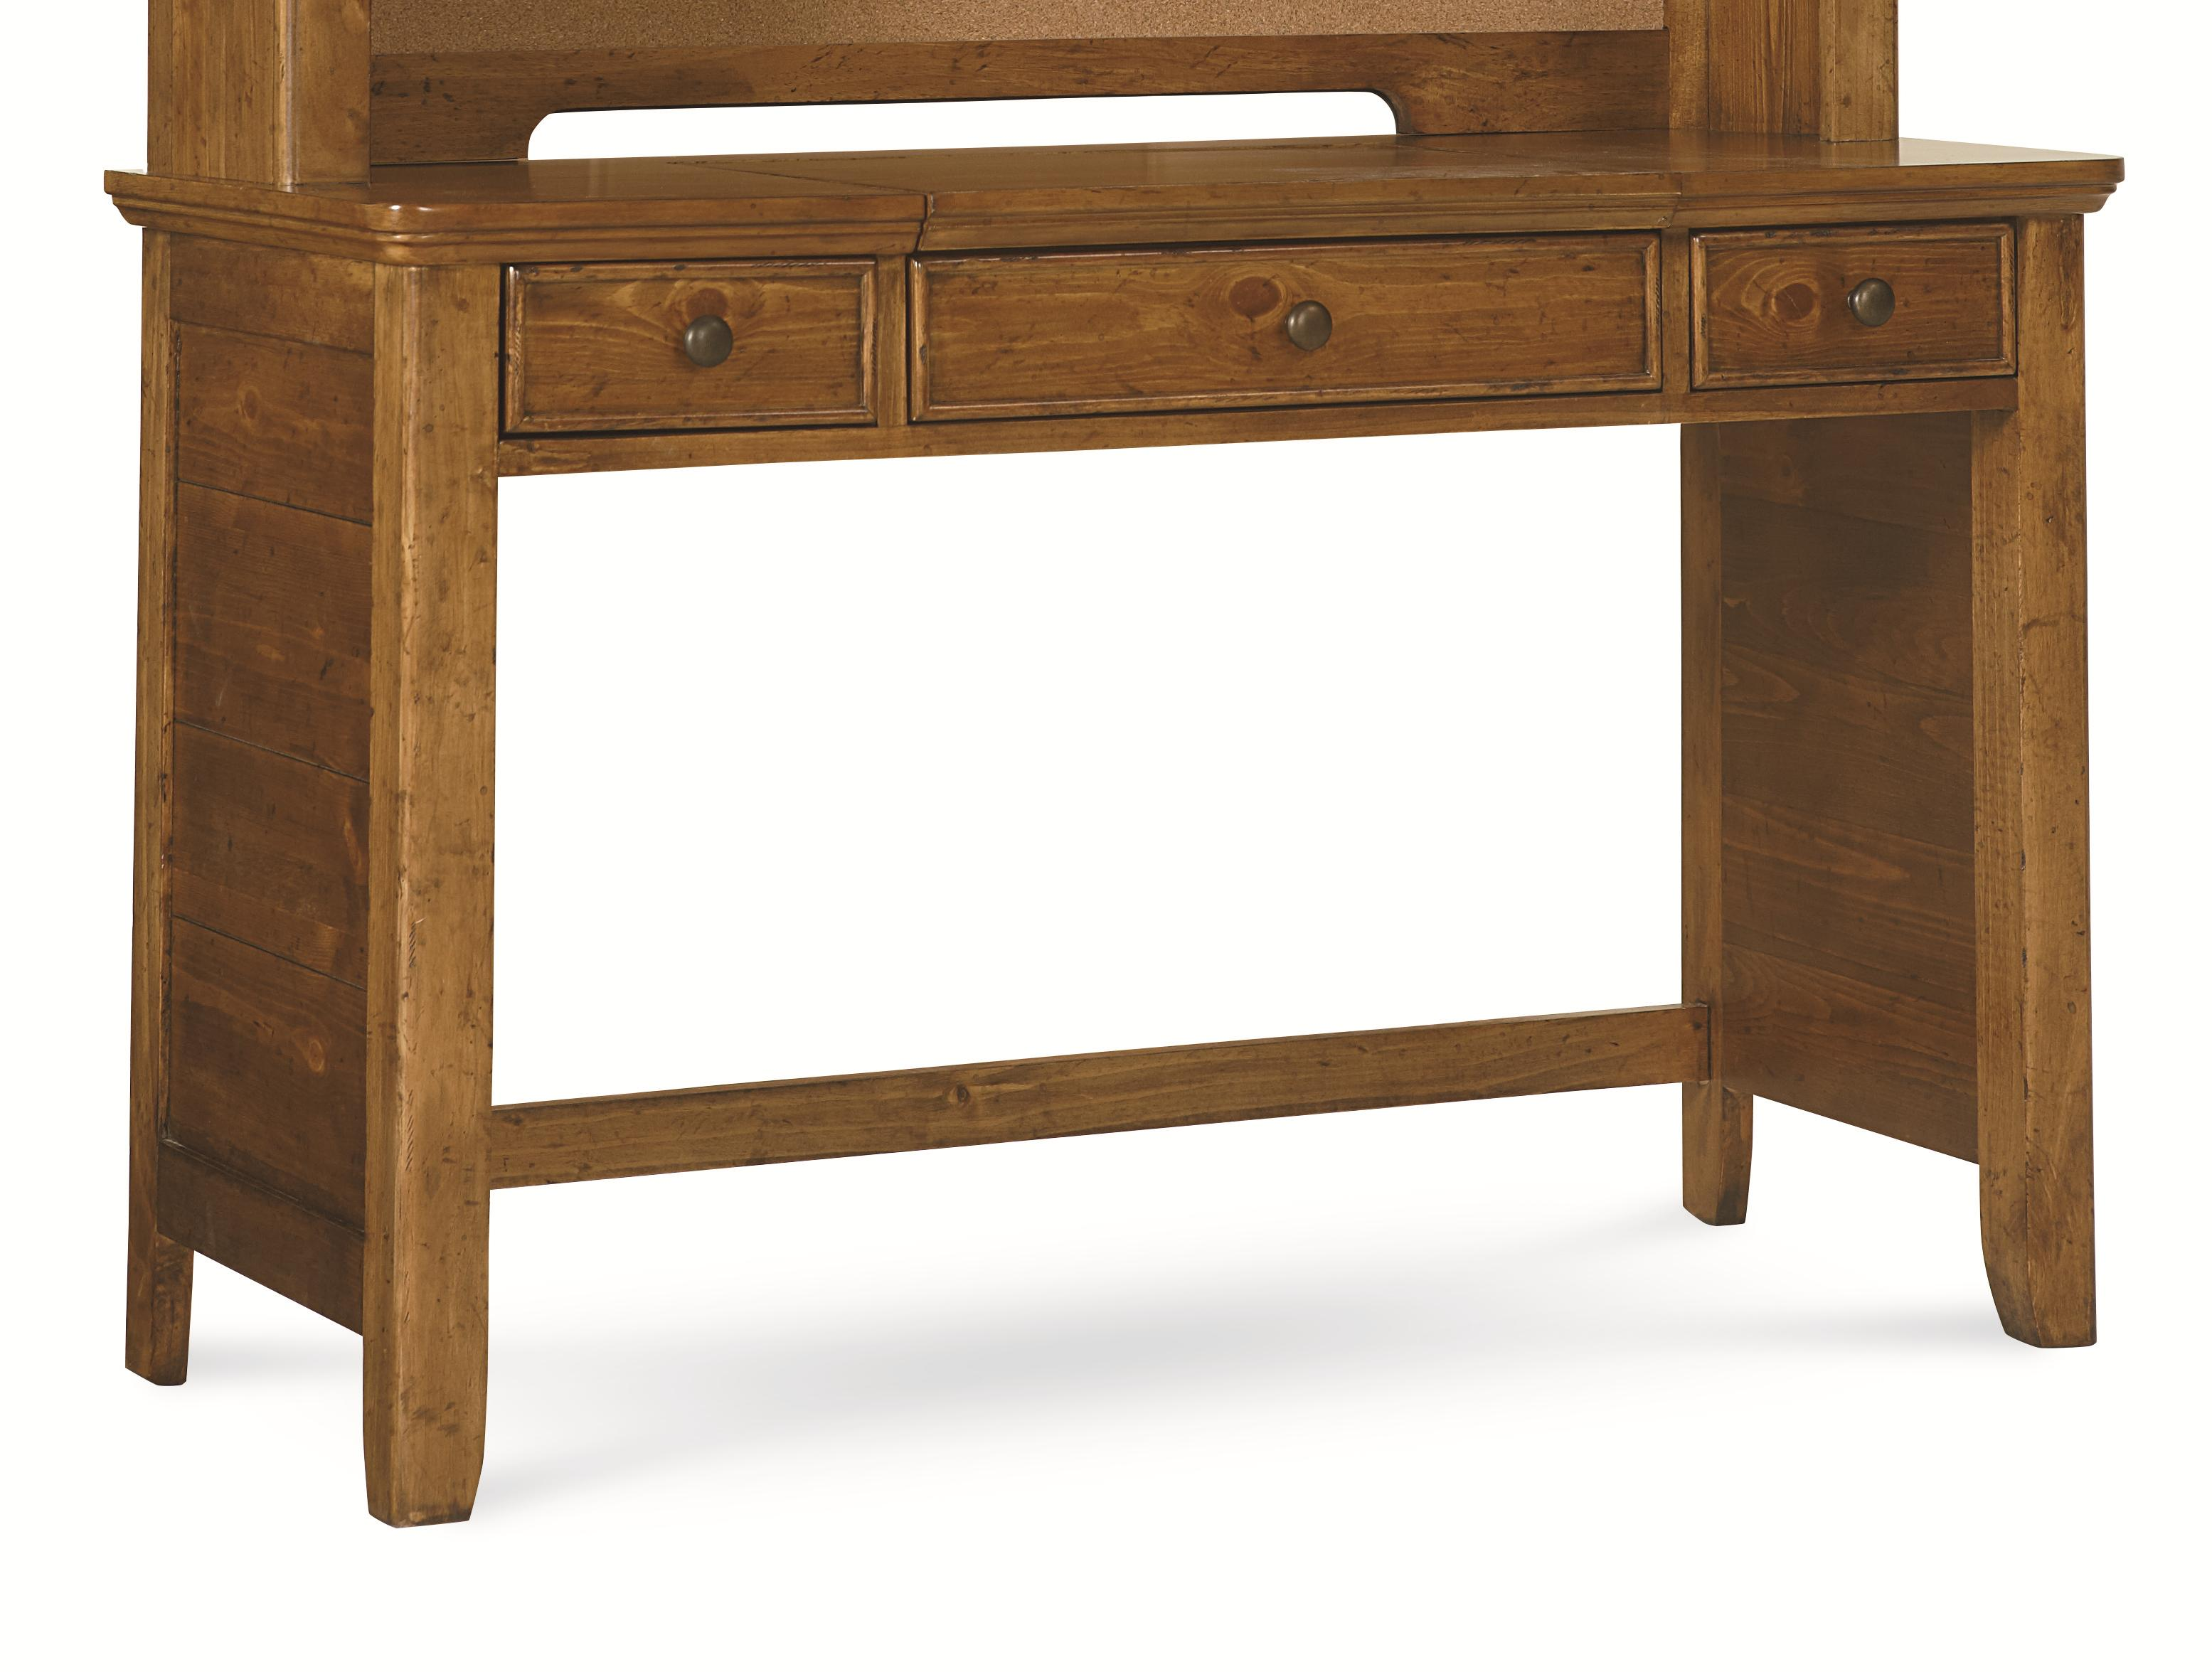 Legacy Classic Kids Bryce Canyon Table Desk - Item Number: 3900-6100